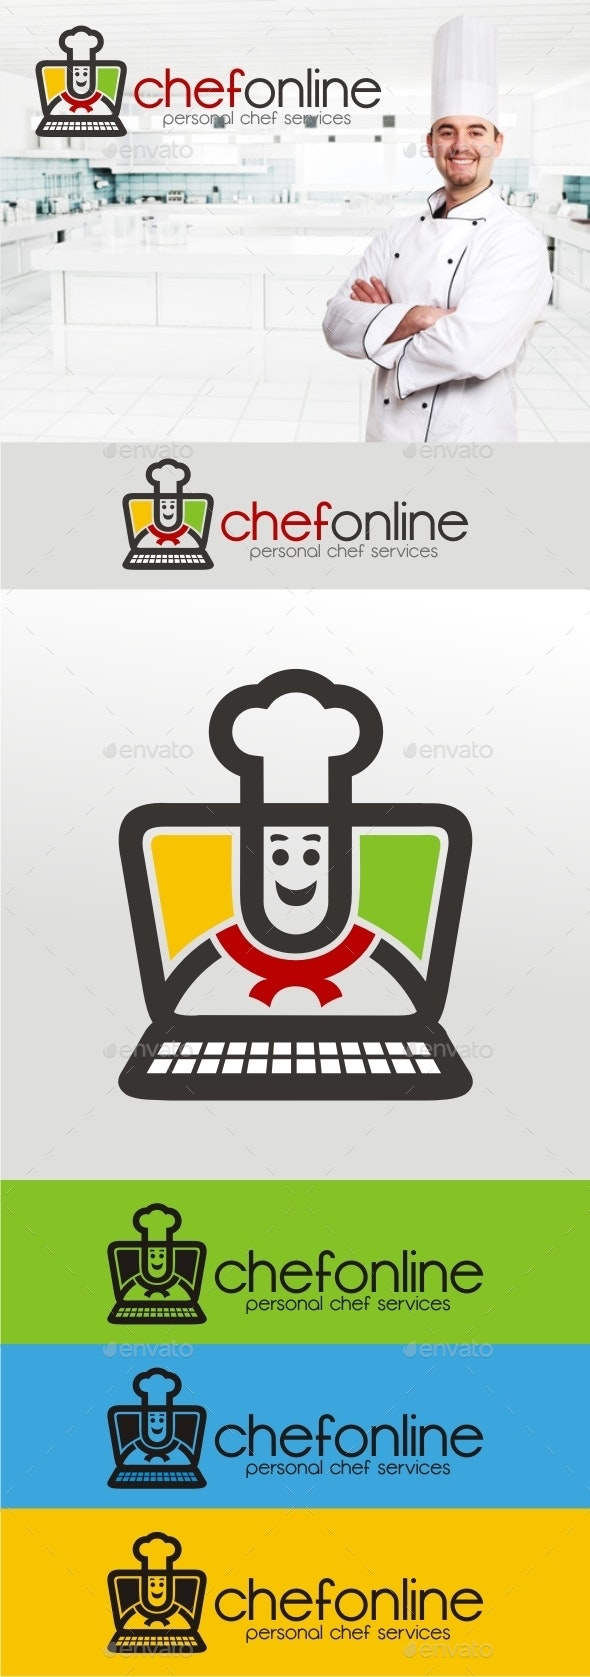 Chef Online V.2 - Humans Logo Templates